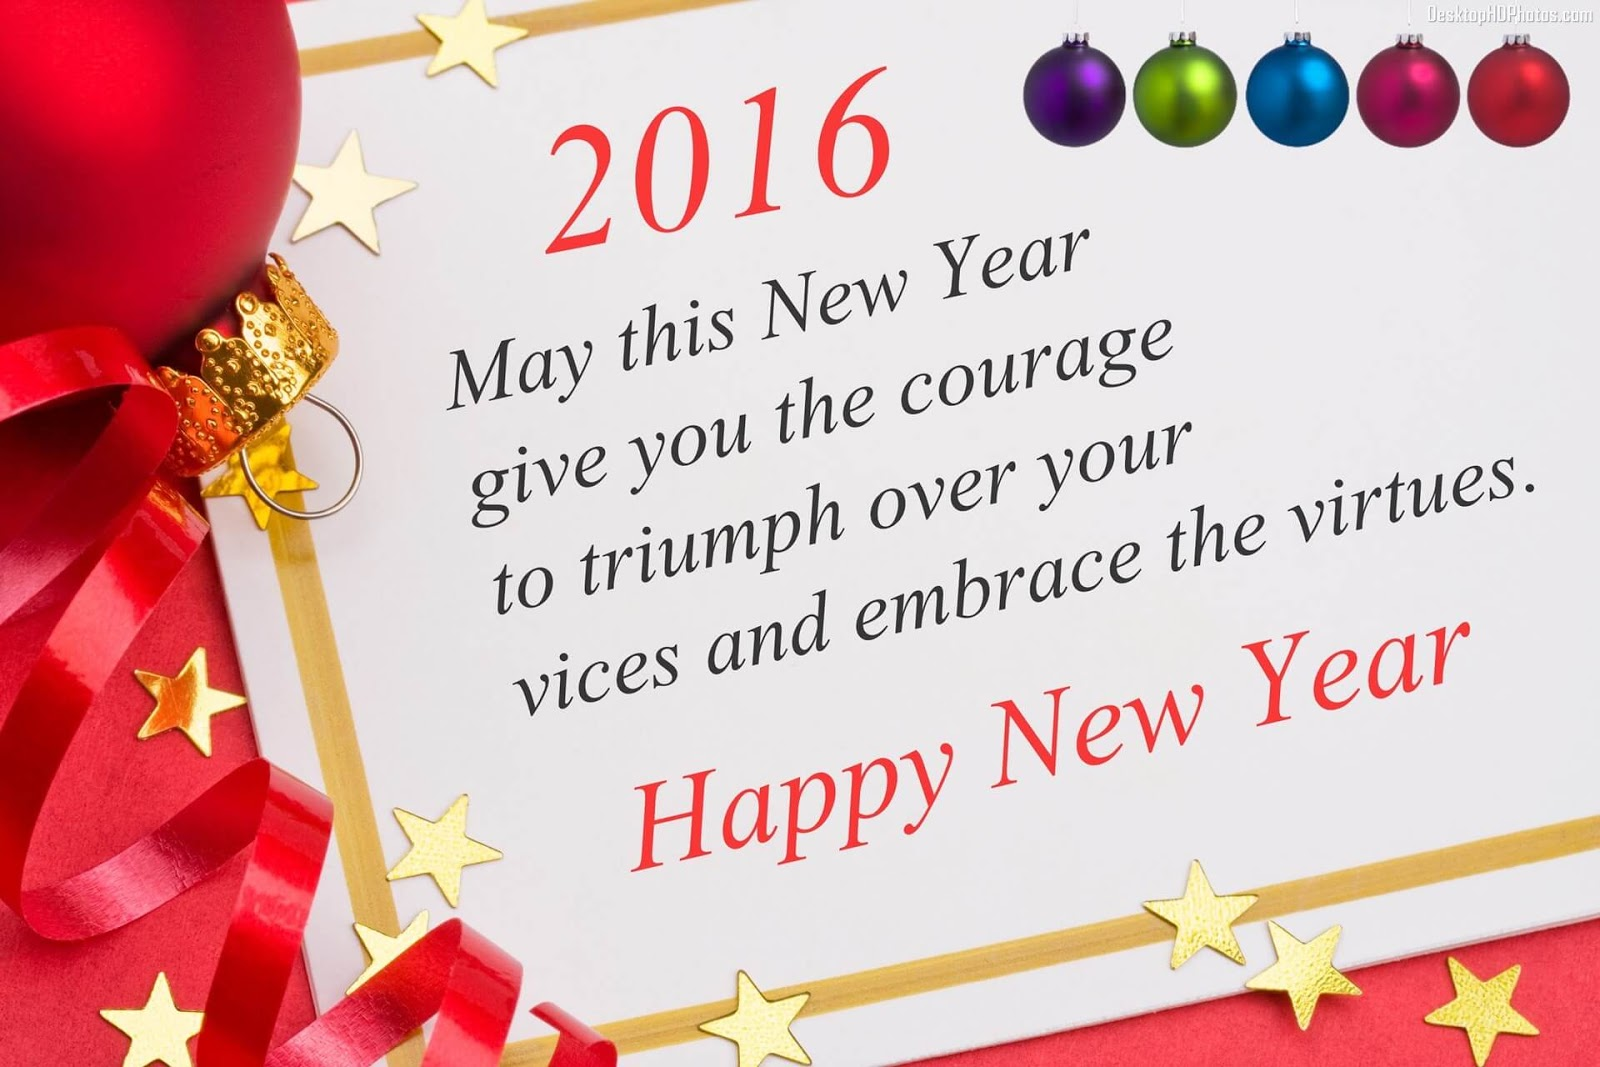 Happy New Year 2016 Images,New Year Wishes 2016,New Year Quotes 2016